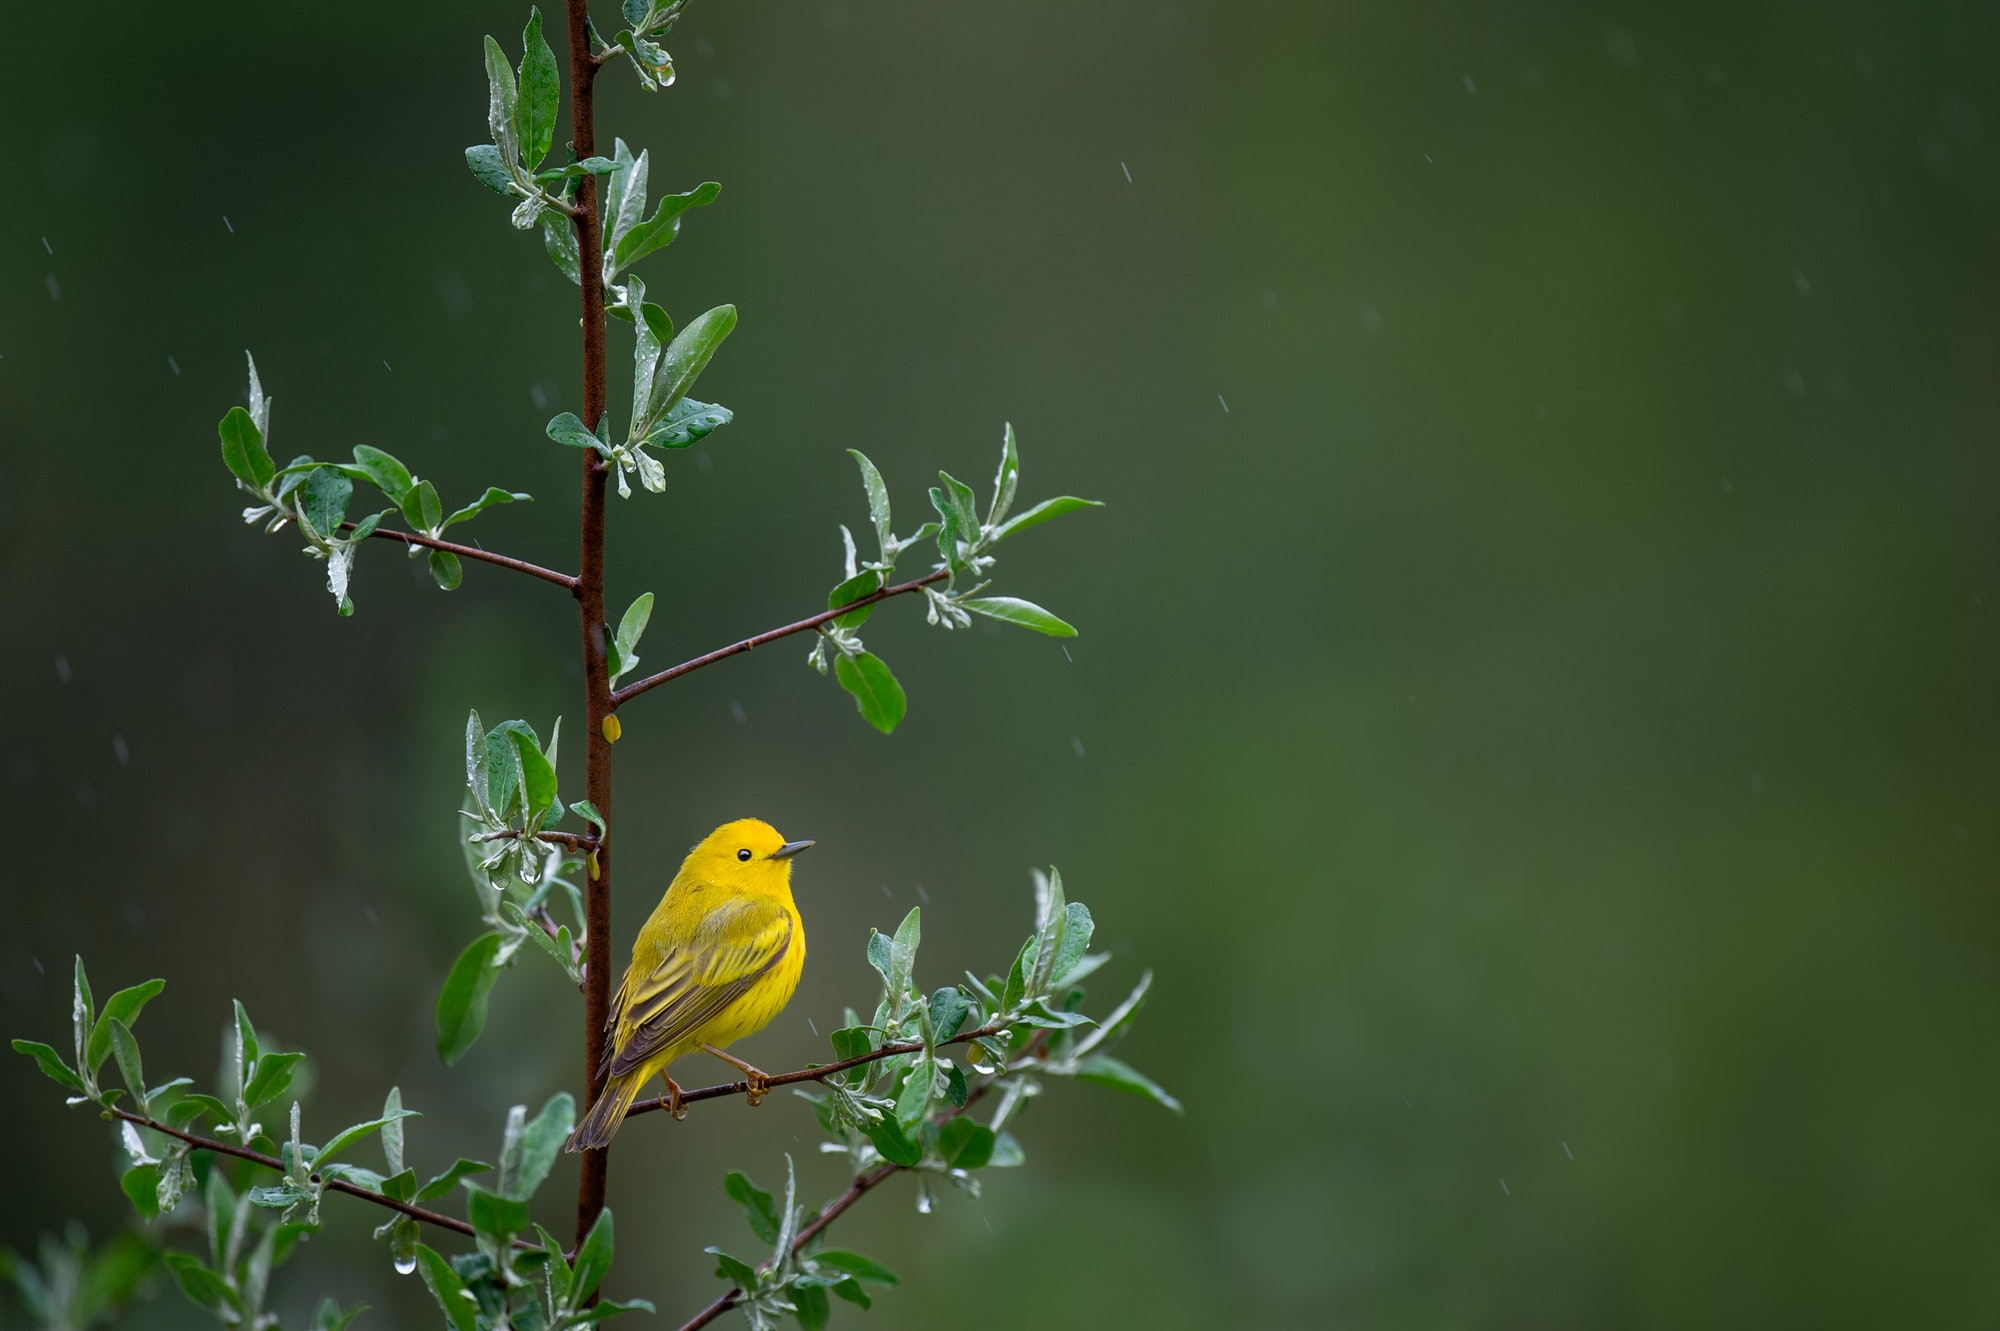 Researchers saw that warblers were some of the birds whose populations decreased the most in the past five decades.